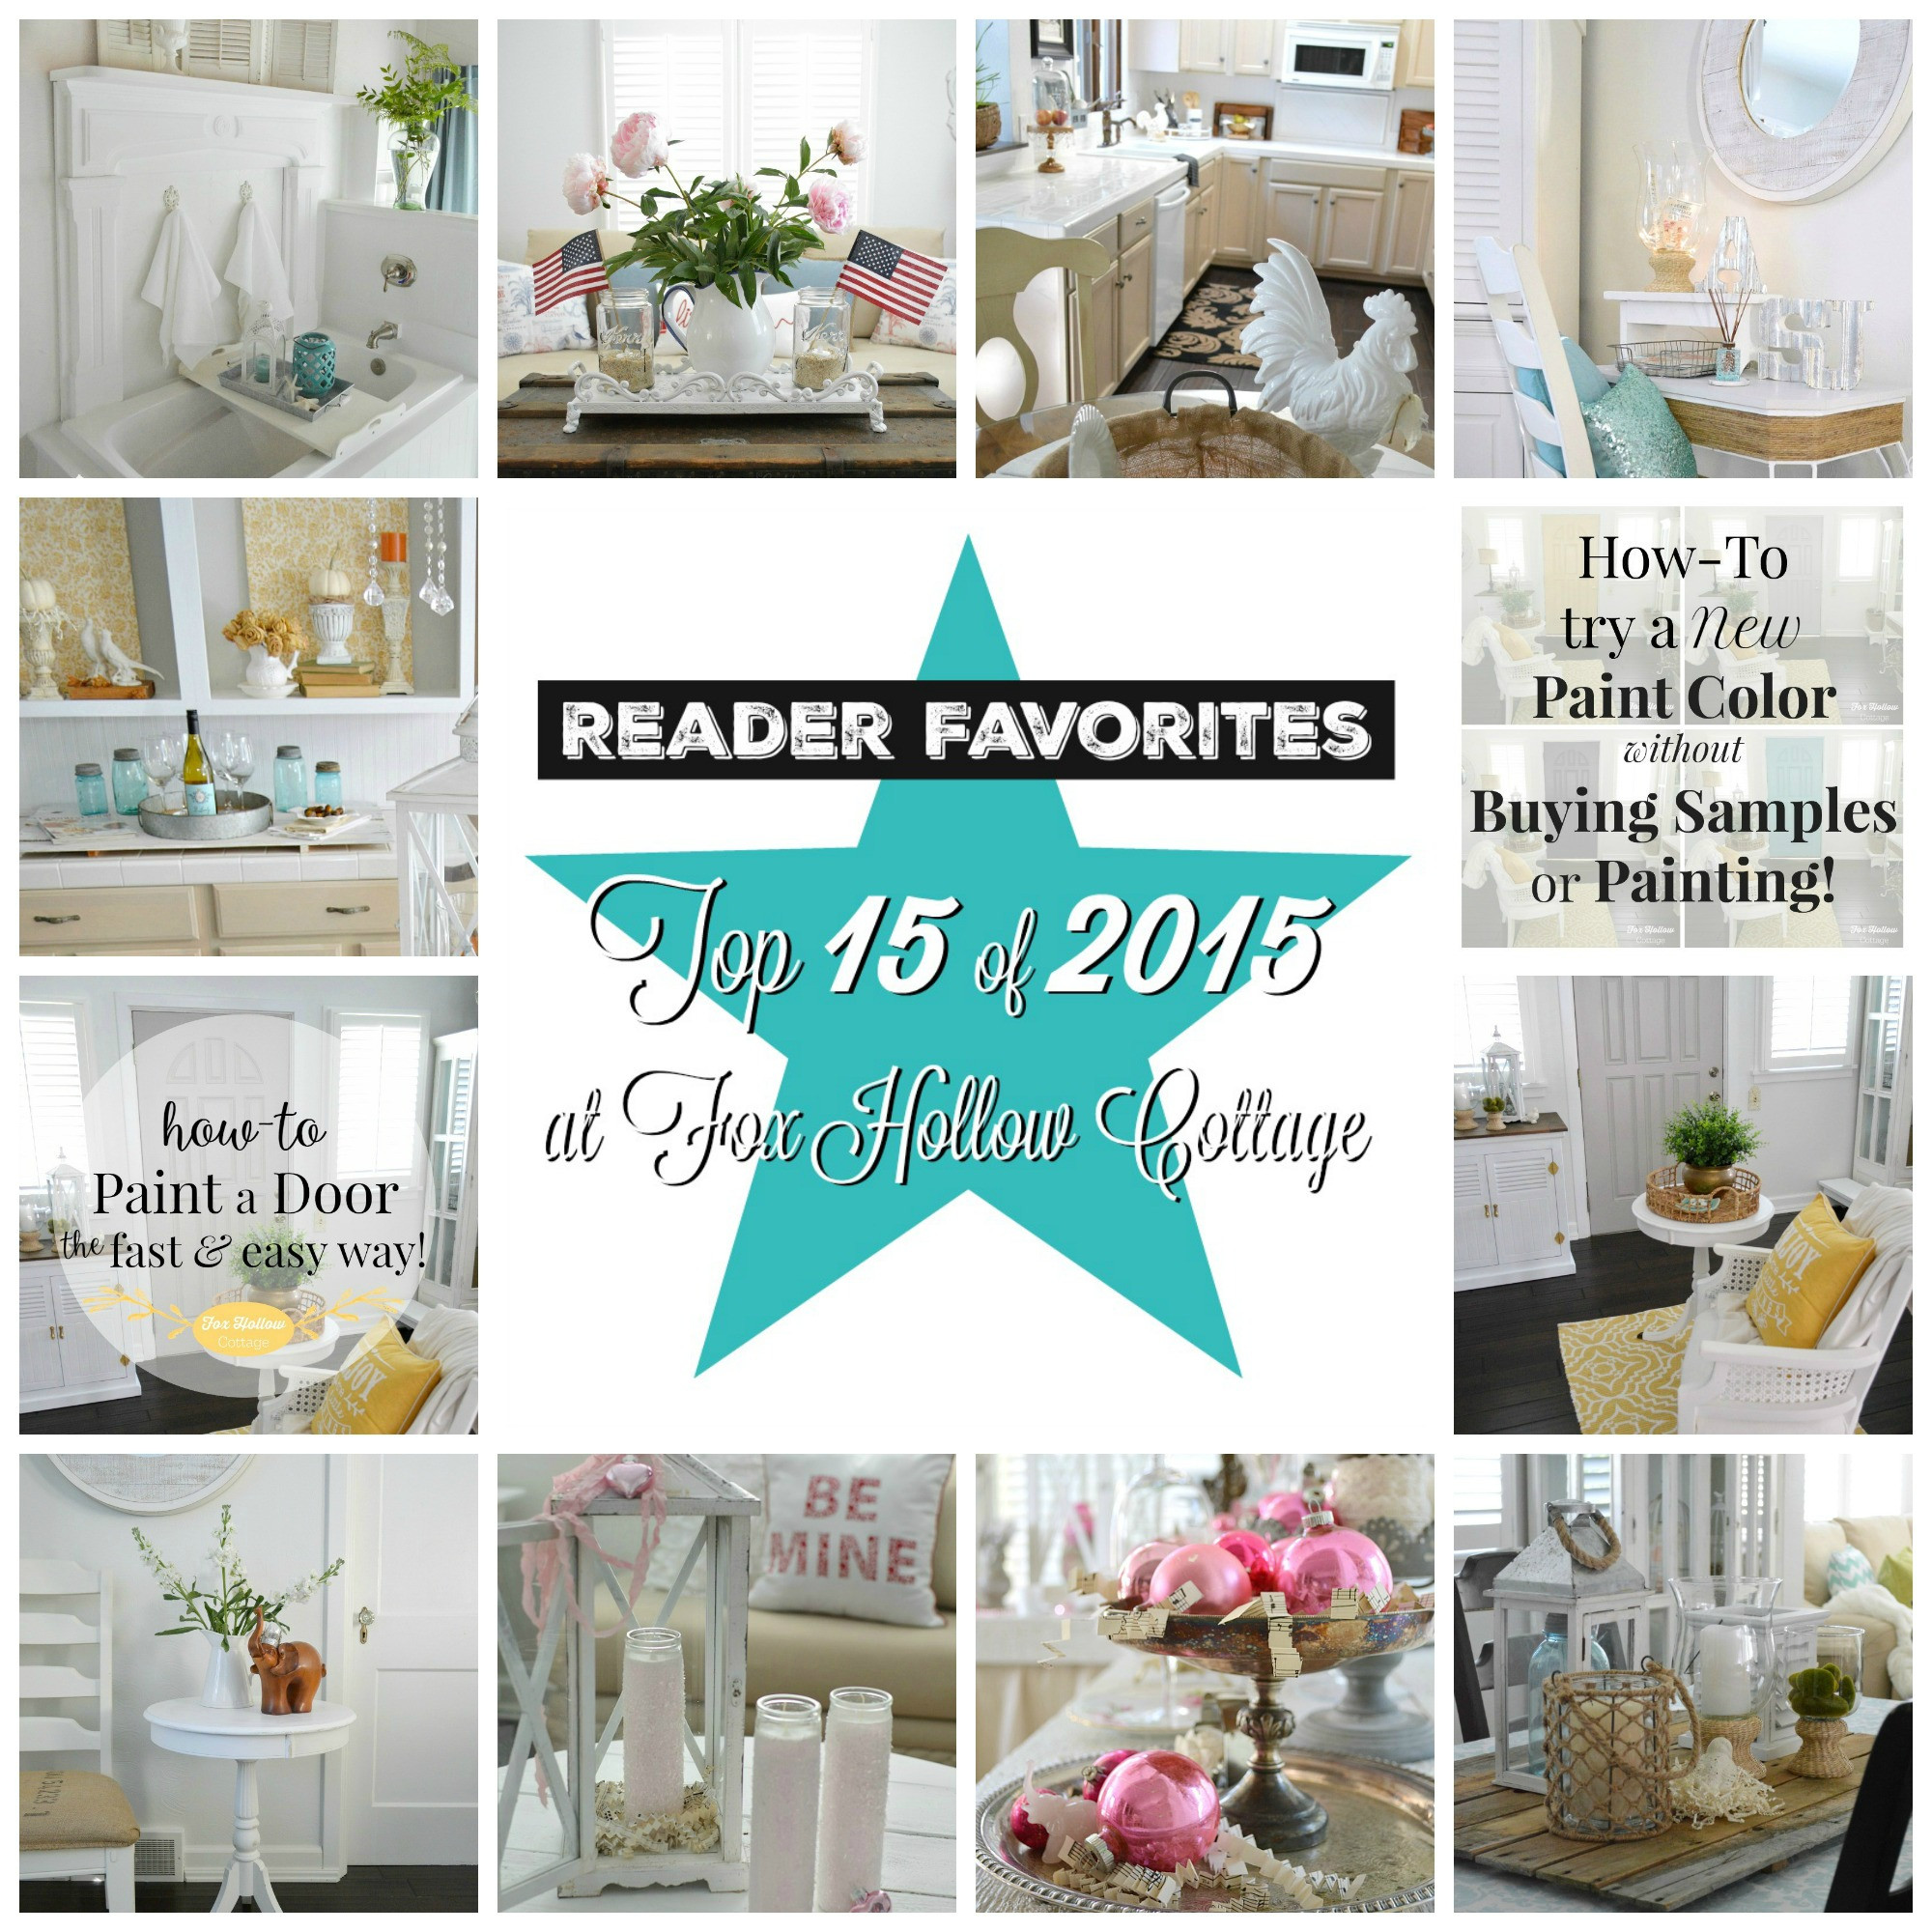 Best ideas about DIY Home Decor Crafts . Save or Pin Top 15 DIY Craft and Home Decorating Projects of 2015 Now.